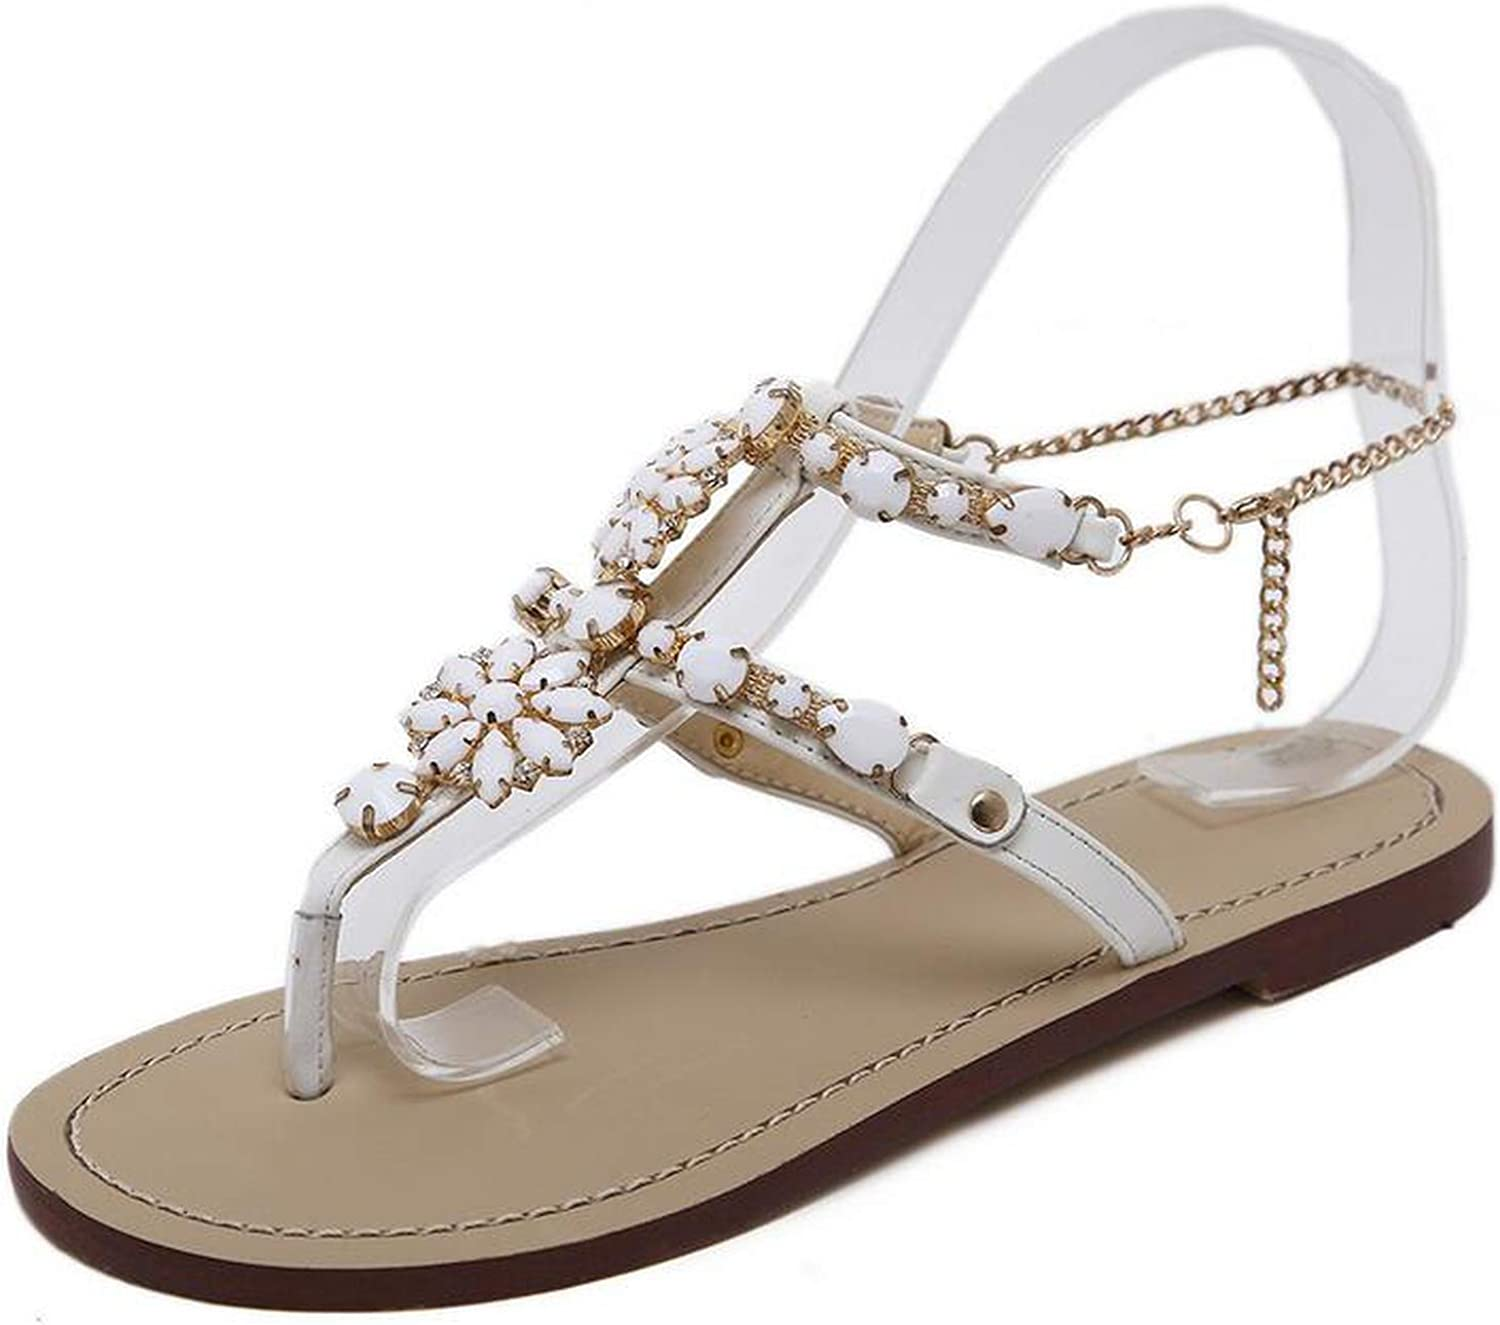 Shine-shine Anklet Chains Sandals Flat Bohemian Style Buckle Strap Crystal Big Size 45 46